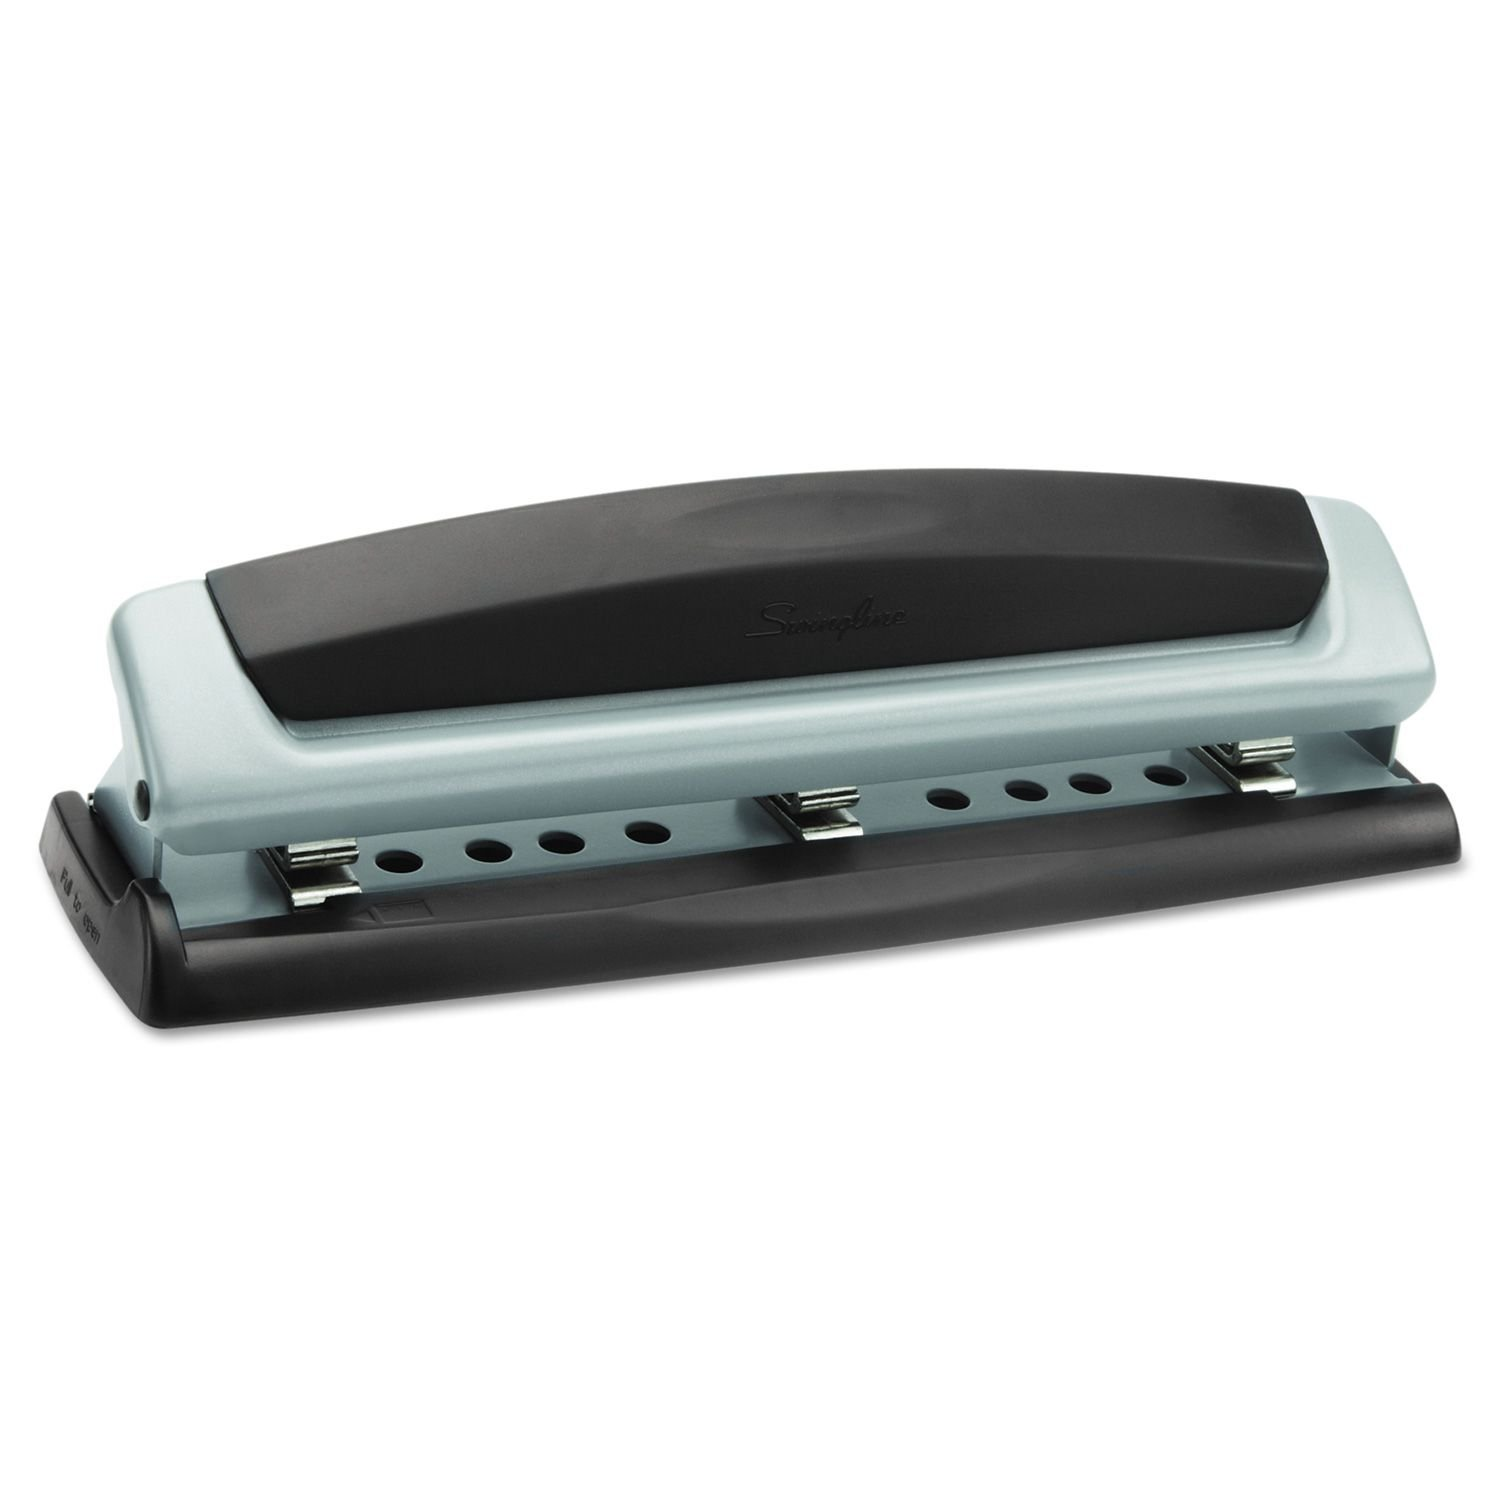 10-Sheet Precision Pro Desktop Twoand Three-Hole Punch 9/32'' Holes